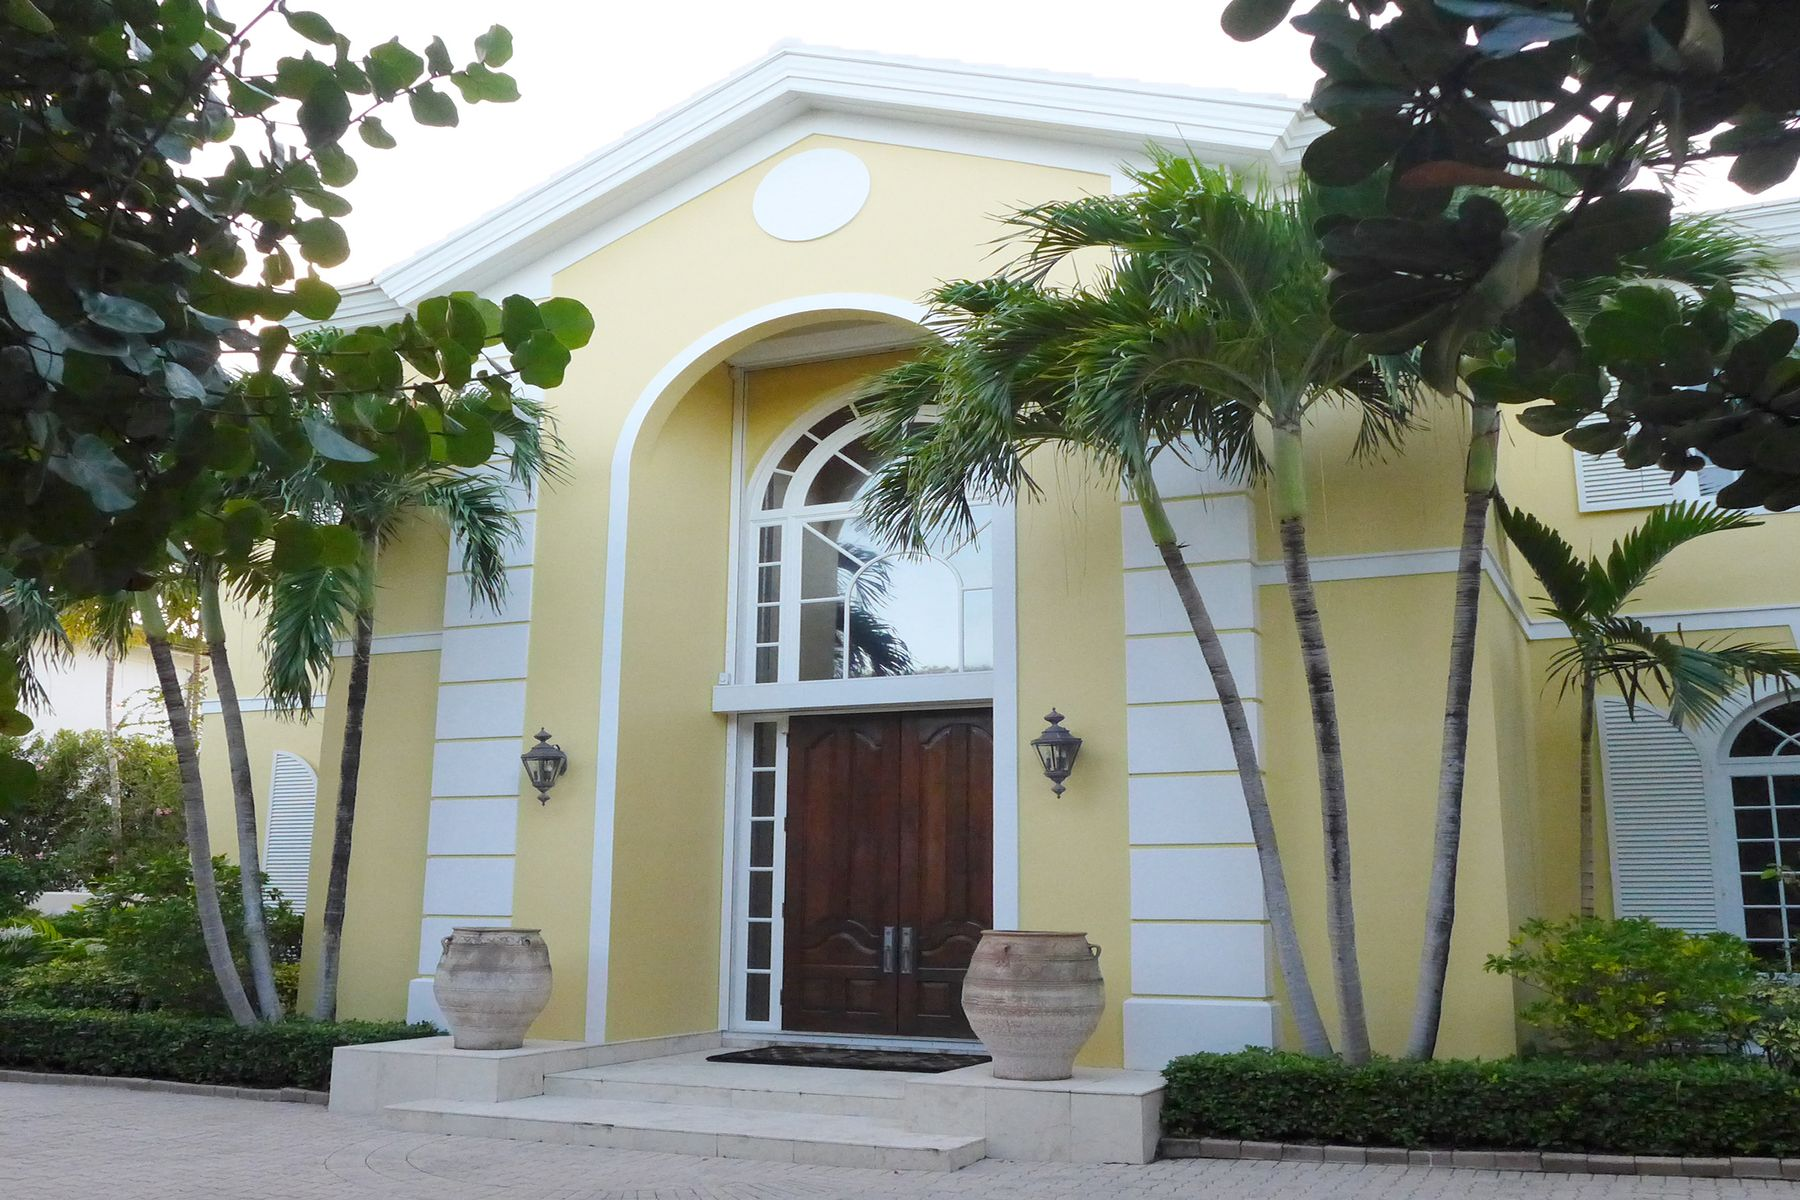 Single Family Home for Active at Elegant Intracoastal on Island Drive 655 Island Dr Palm Beach, Florida 33480 United States